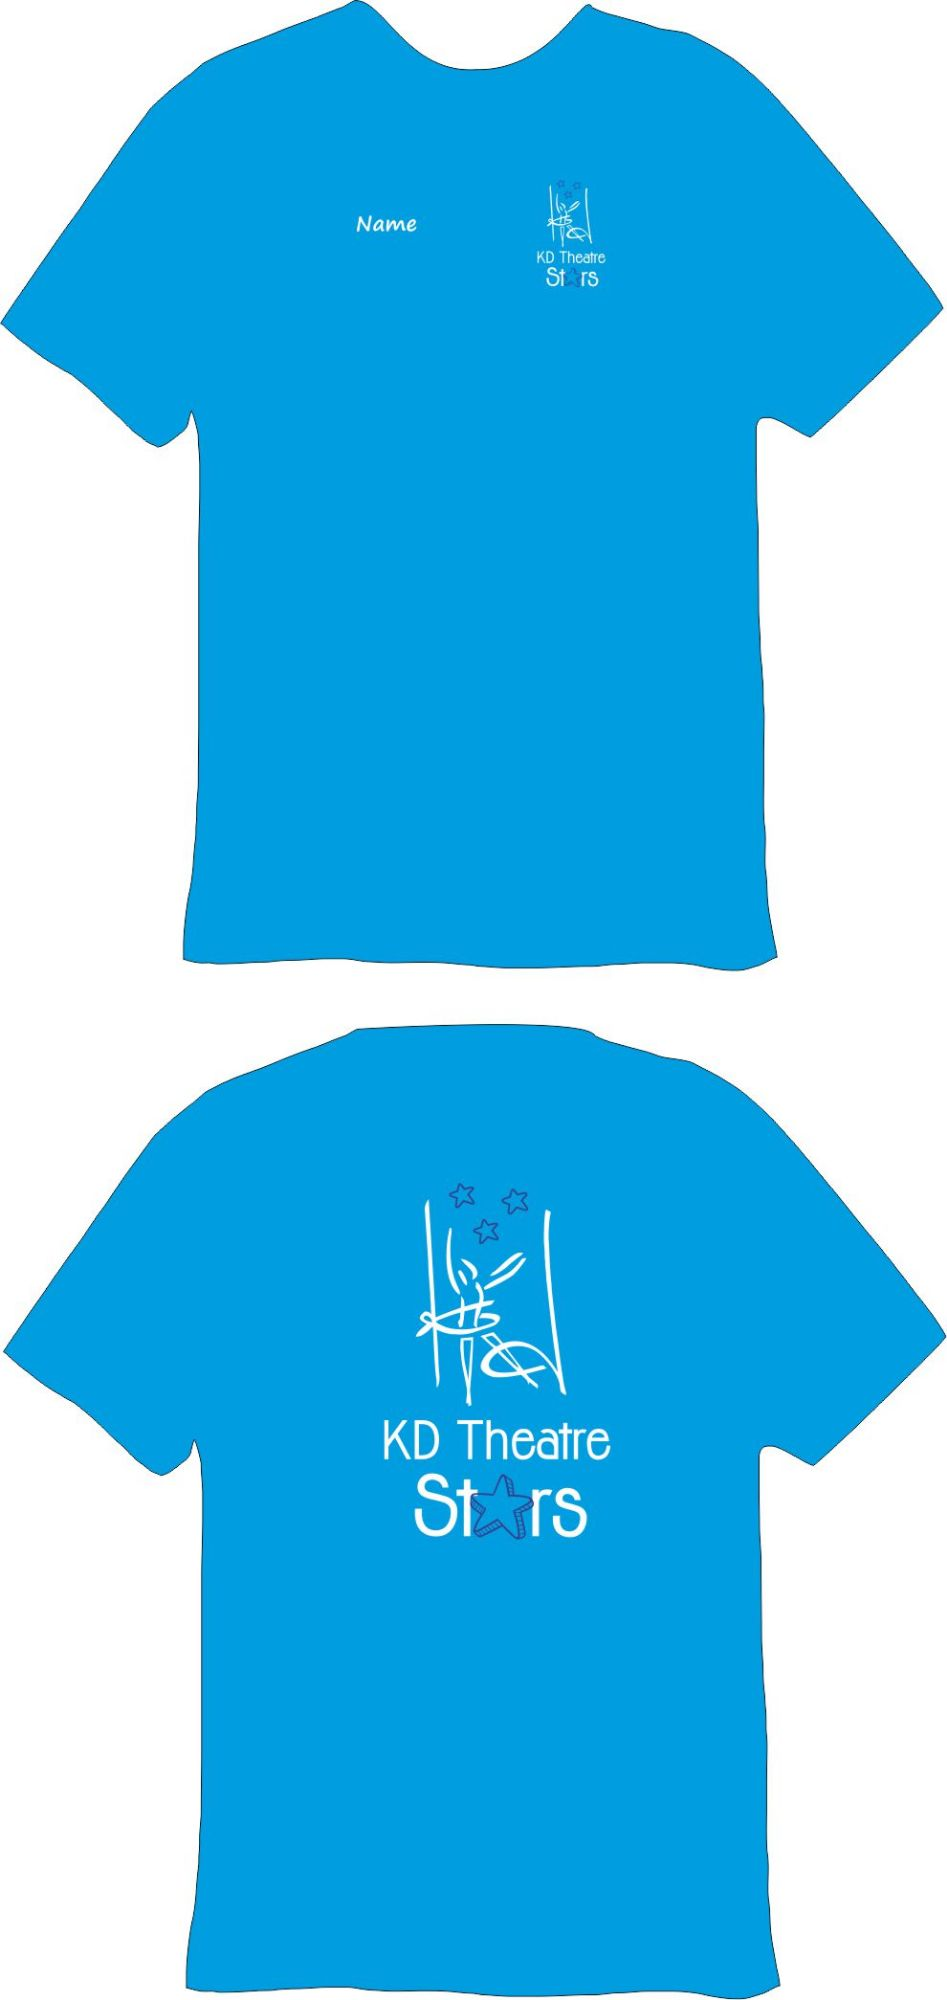 KD Theatre Stars Cotton T-Shirt